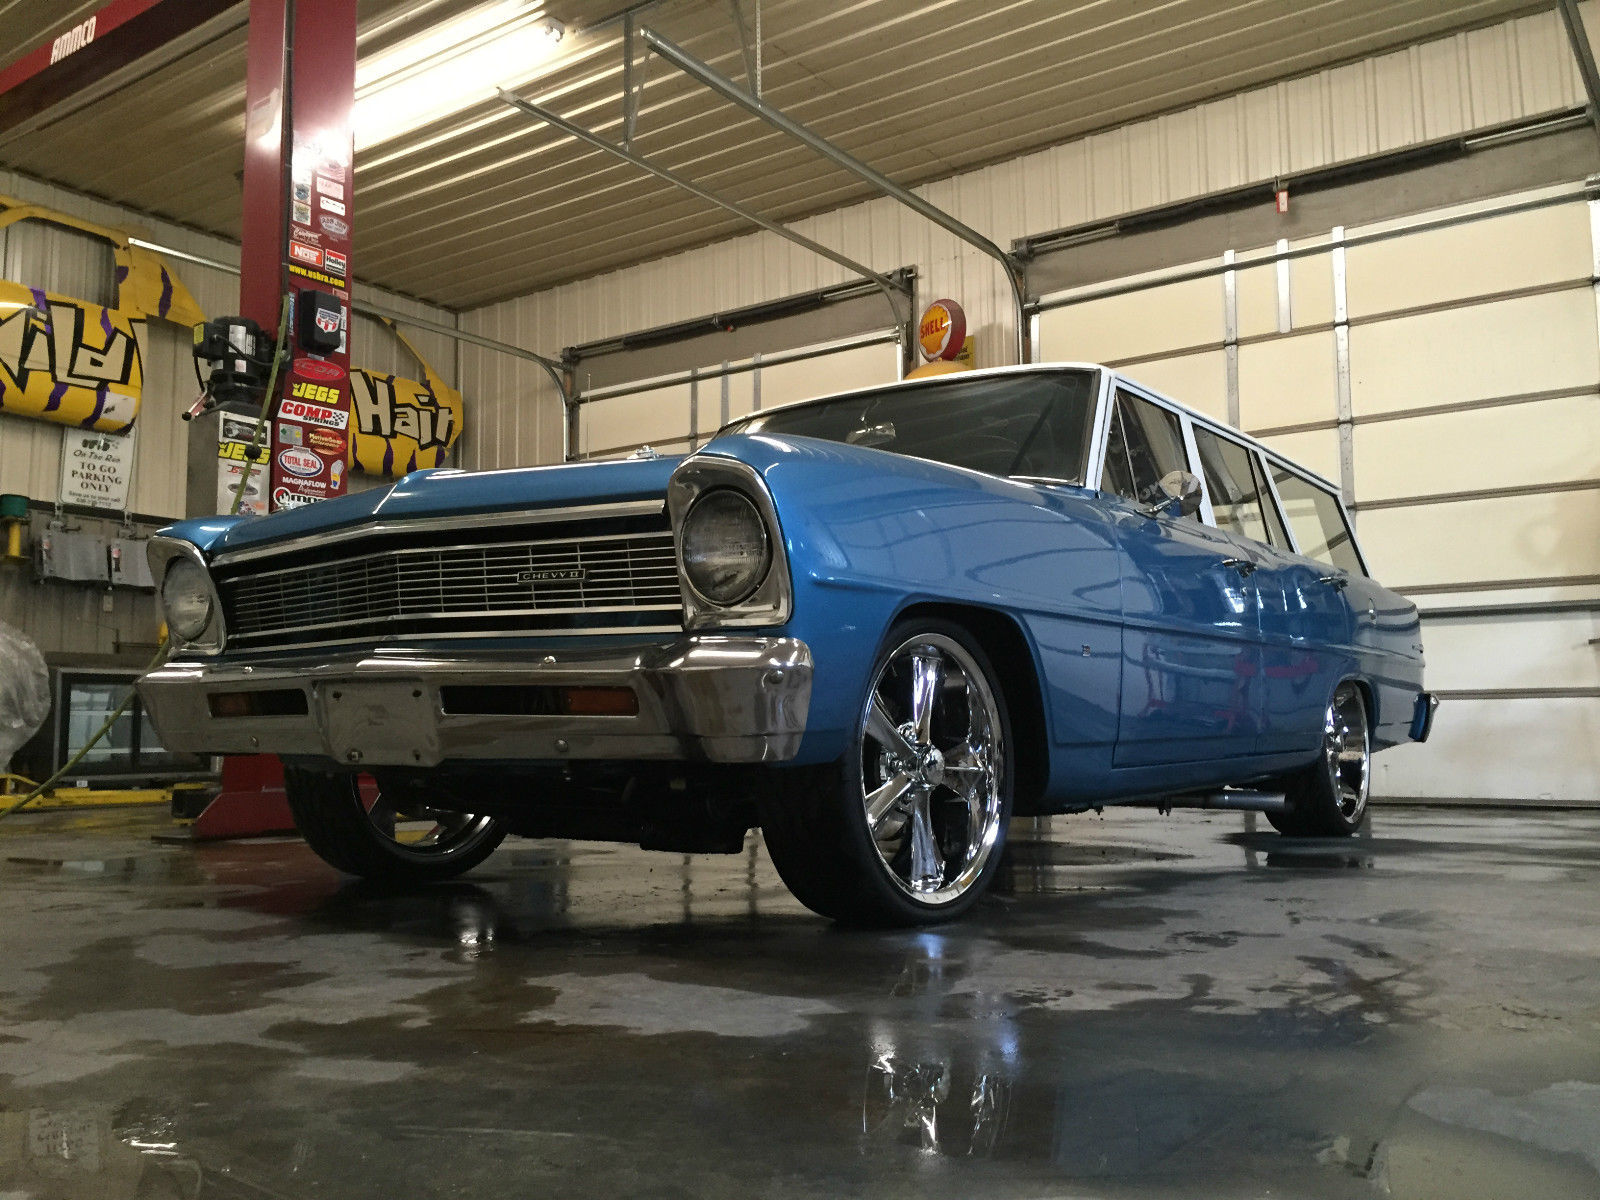 1966 Chevy Ii Nova Wagon Hot Rod Vintage Air Fresh Restoration Chevrolet